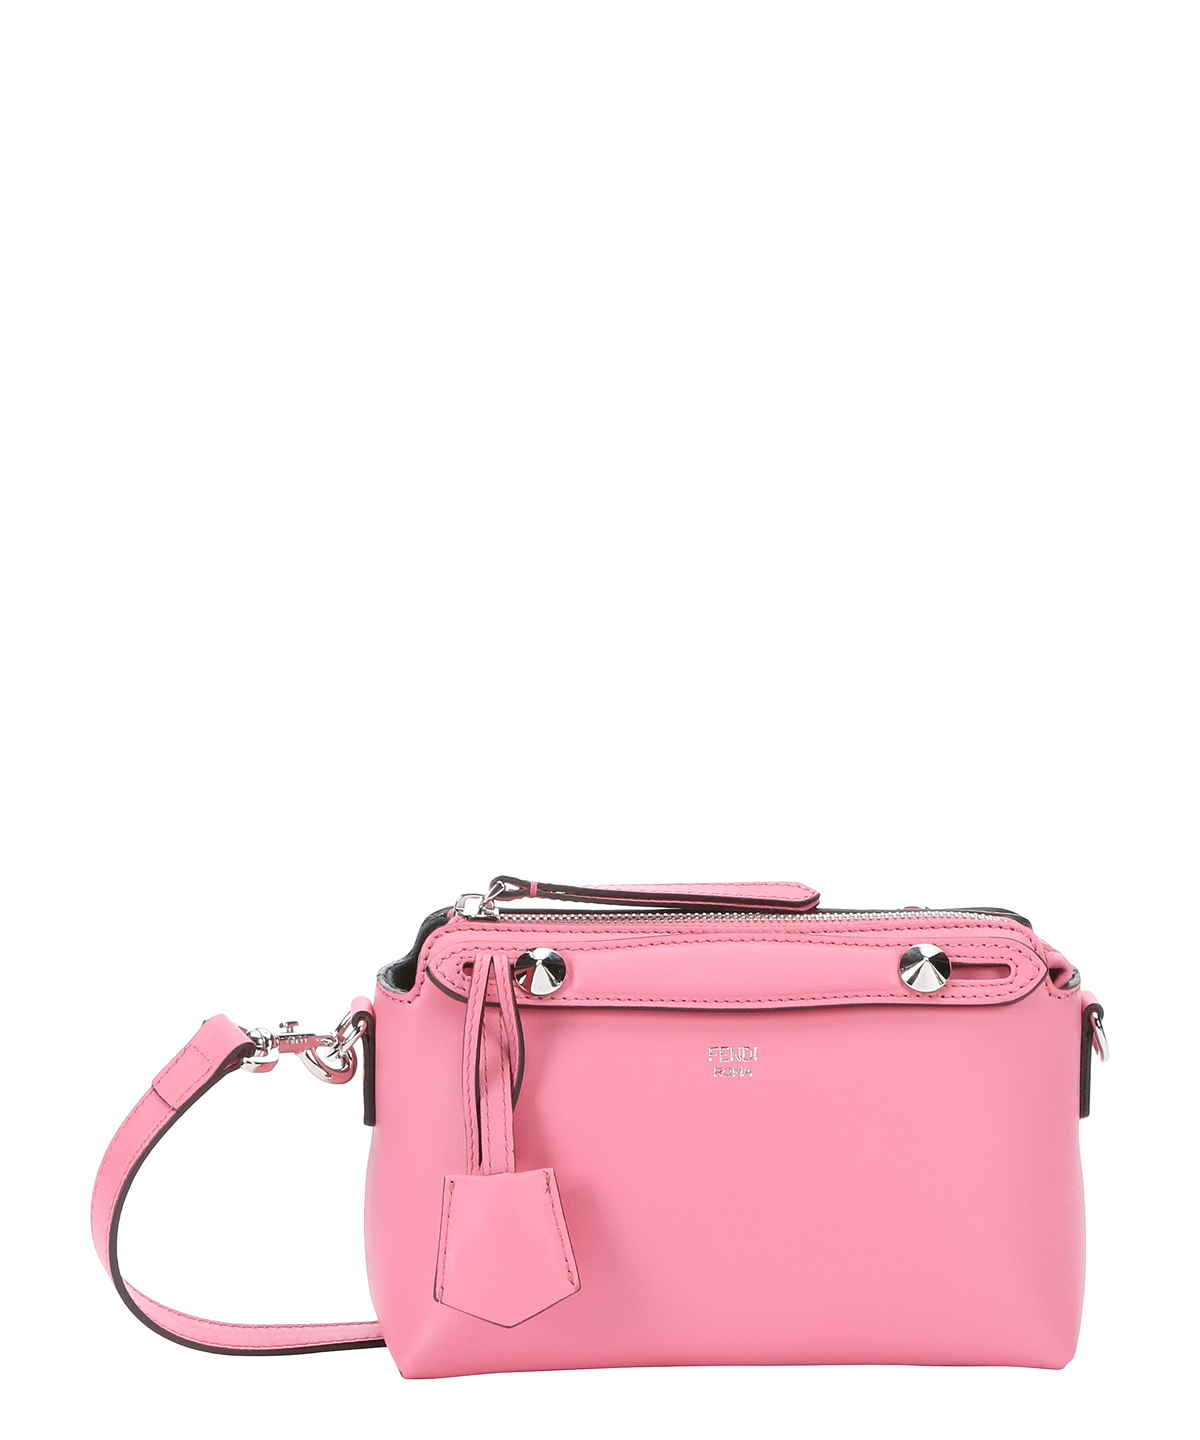 FENDI Pink Leather Mini 'By The Way' Convertible Shoulder Bag'. #fendi #bags #shoulder bags #hand bags #leather #lining #